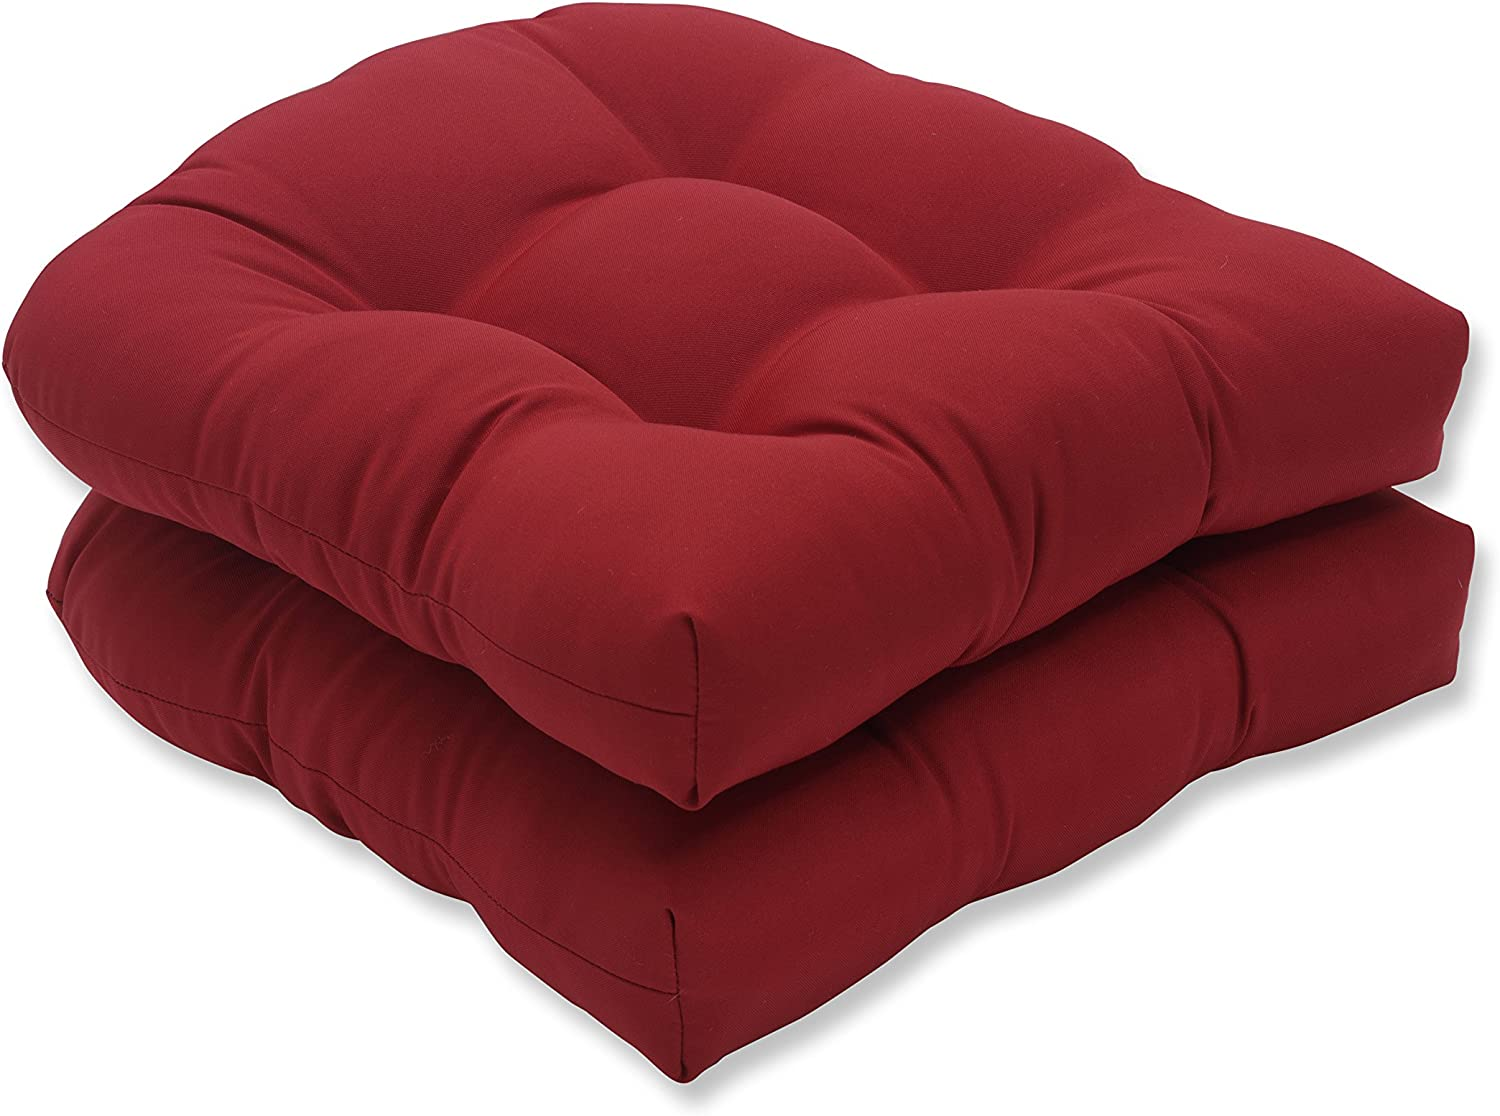 Pillow Perfect Pompeii Red (Set of 2) Wicker Seat Cushions, Solid